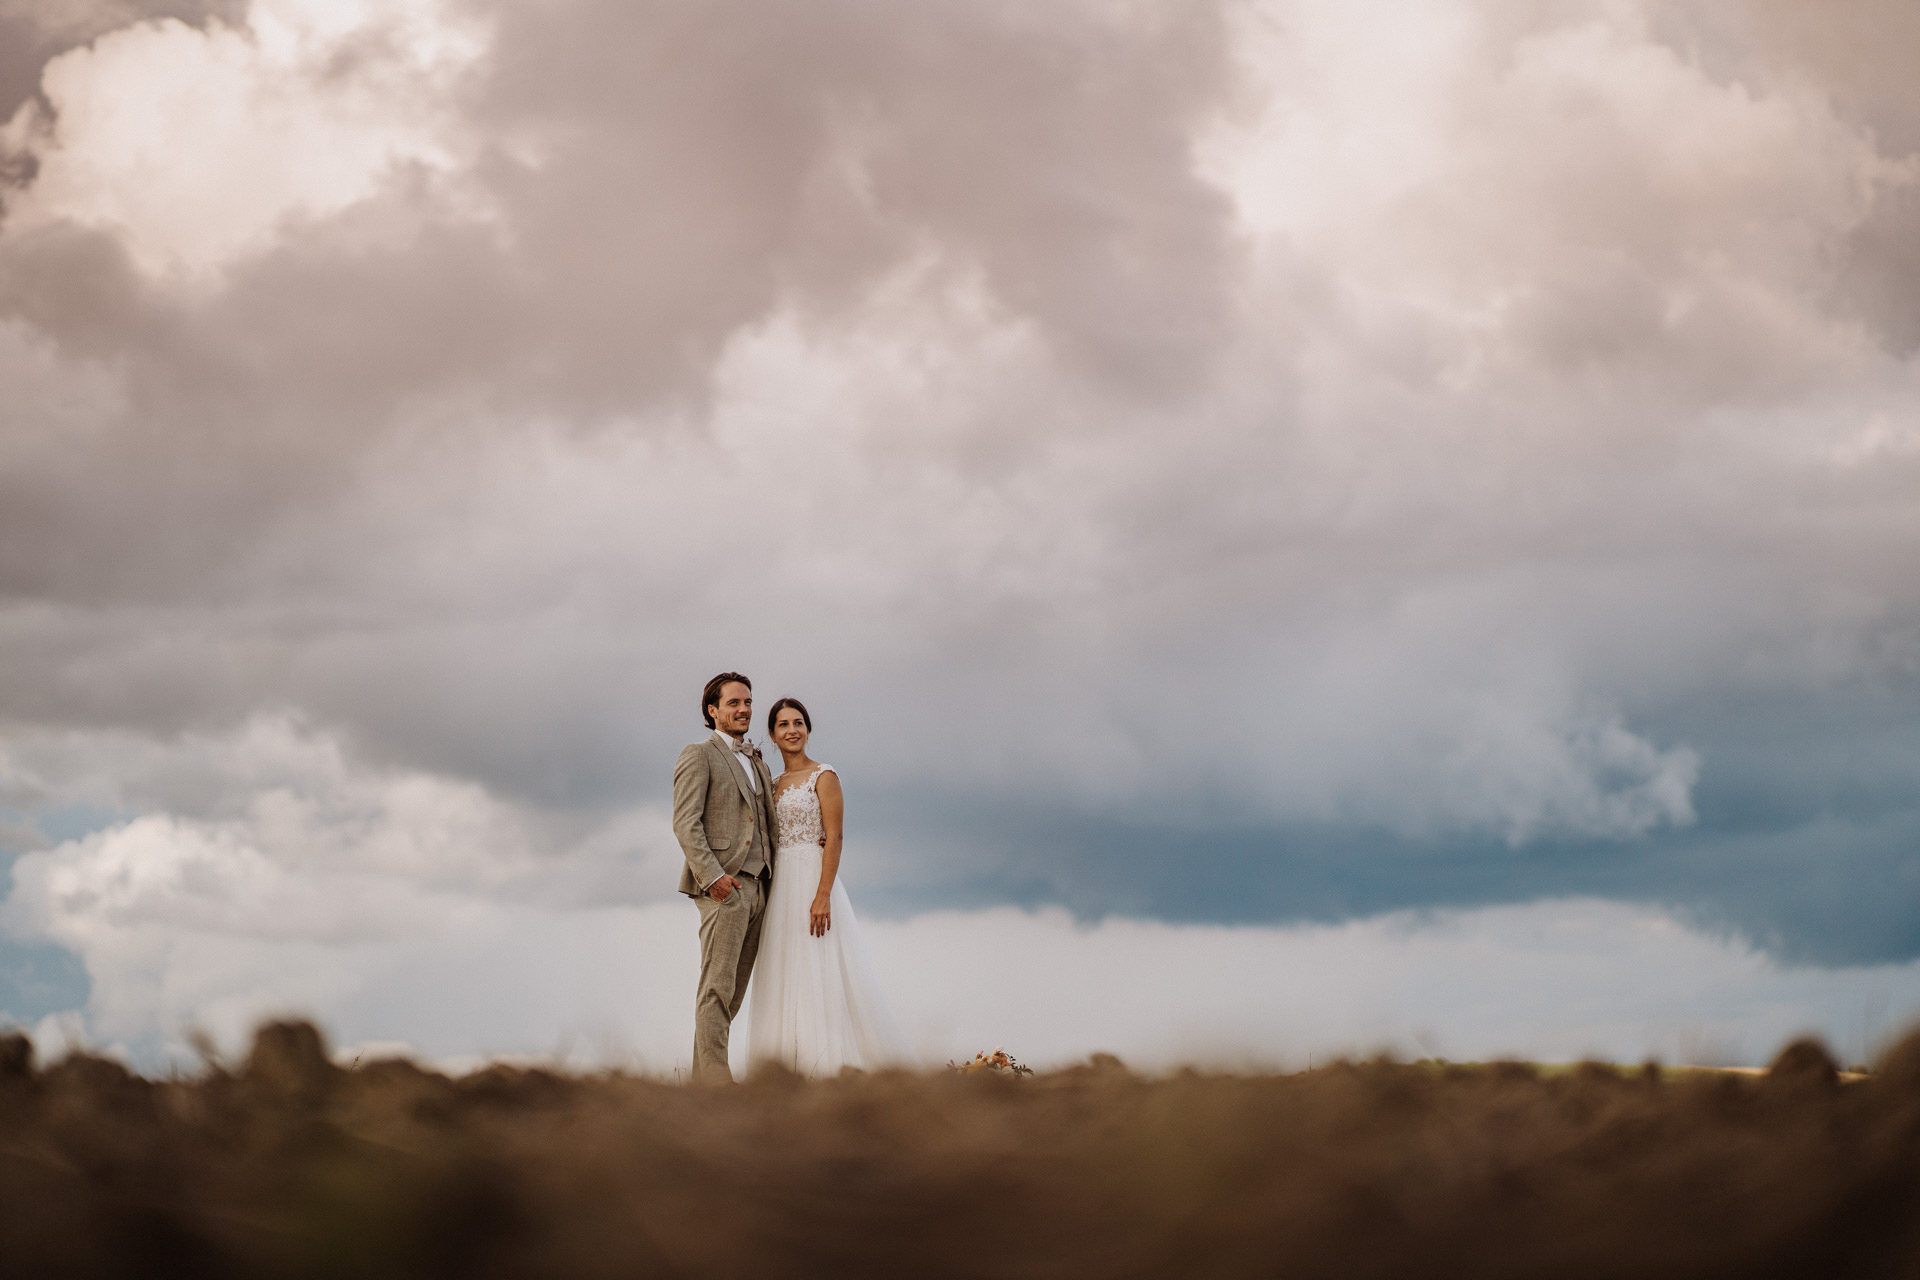 Agriturismo il Rigo Bride and Groom Elopement Portrait   The sky with the colors of the storm can be seen in the background